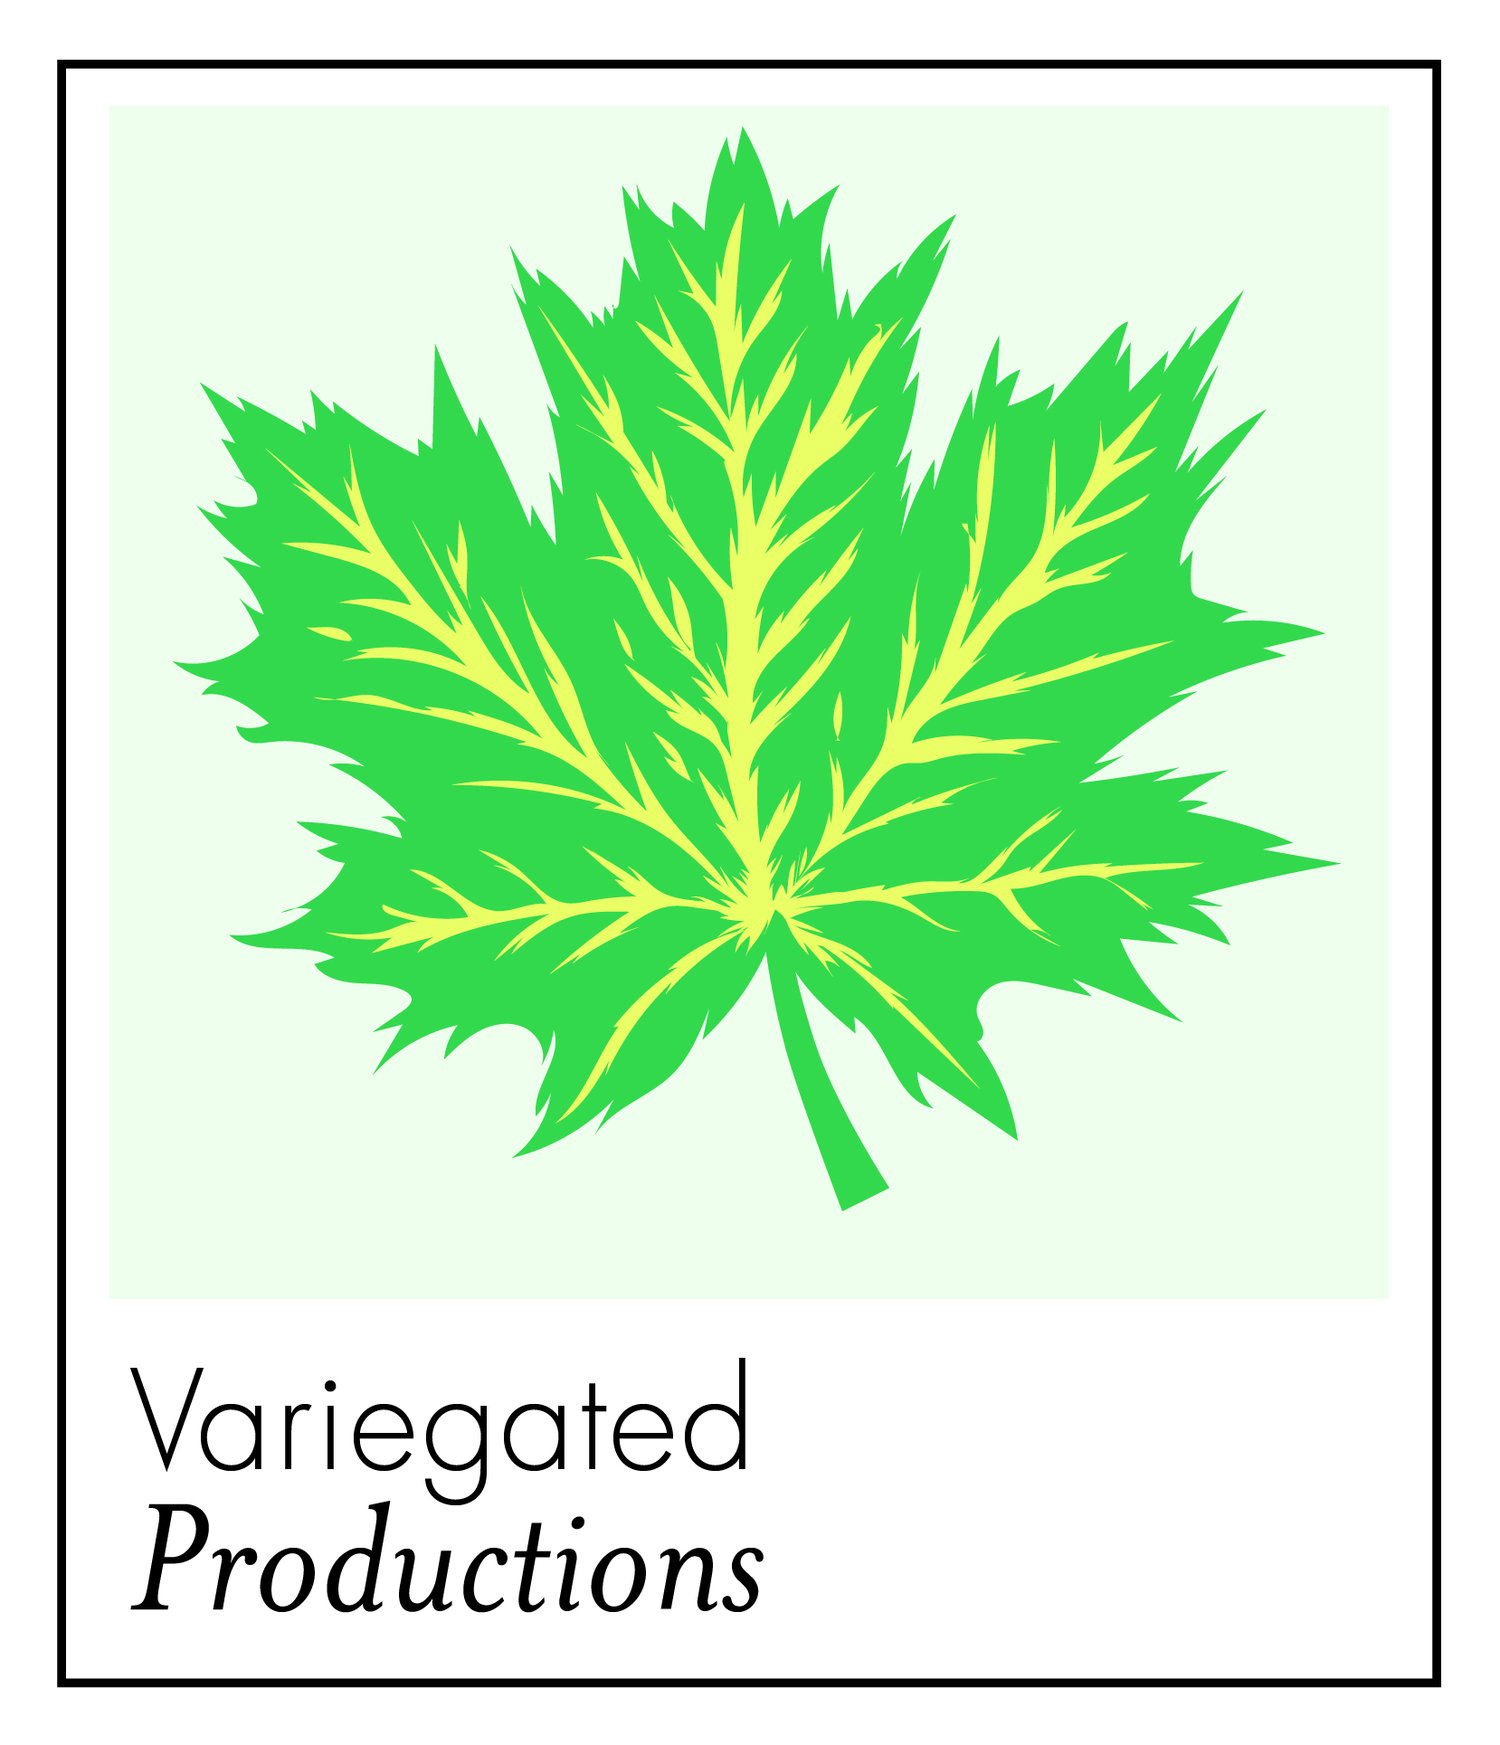 Variegated Productions